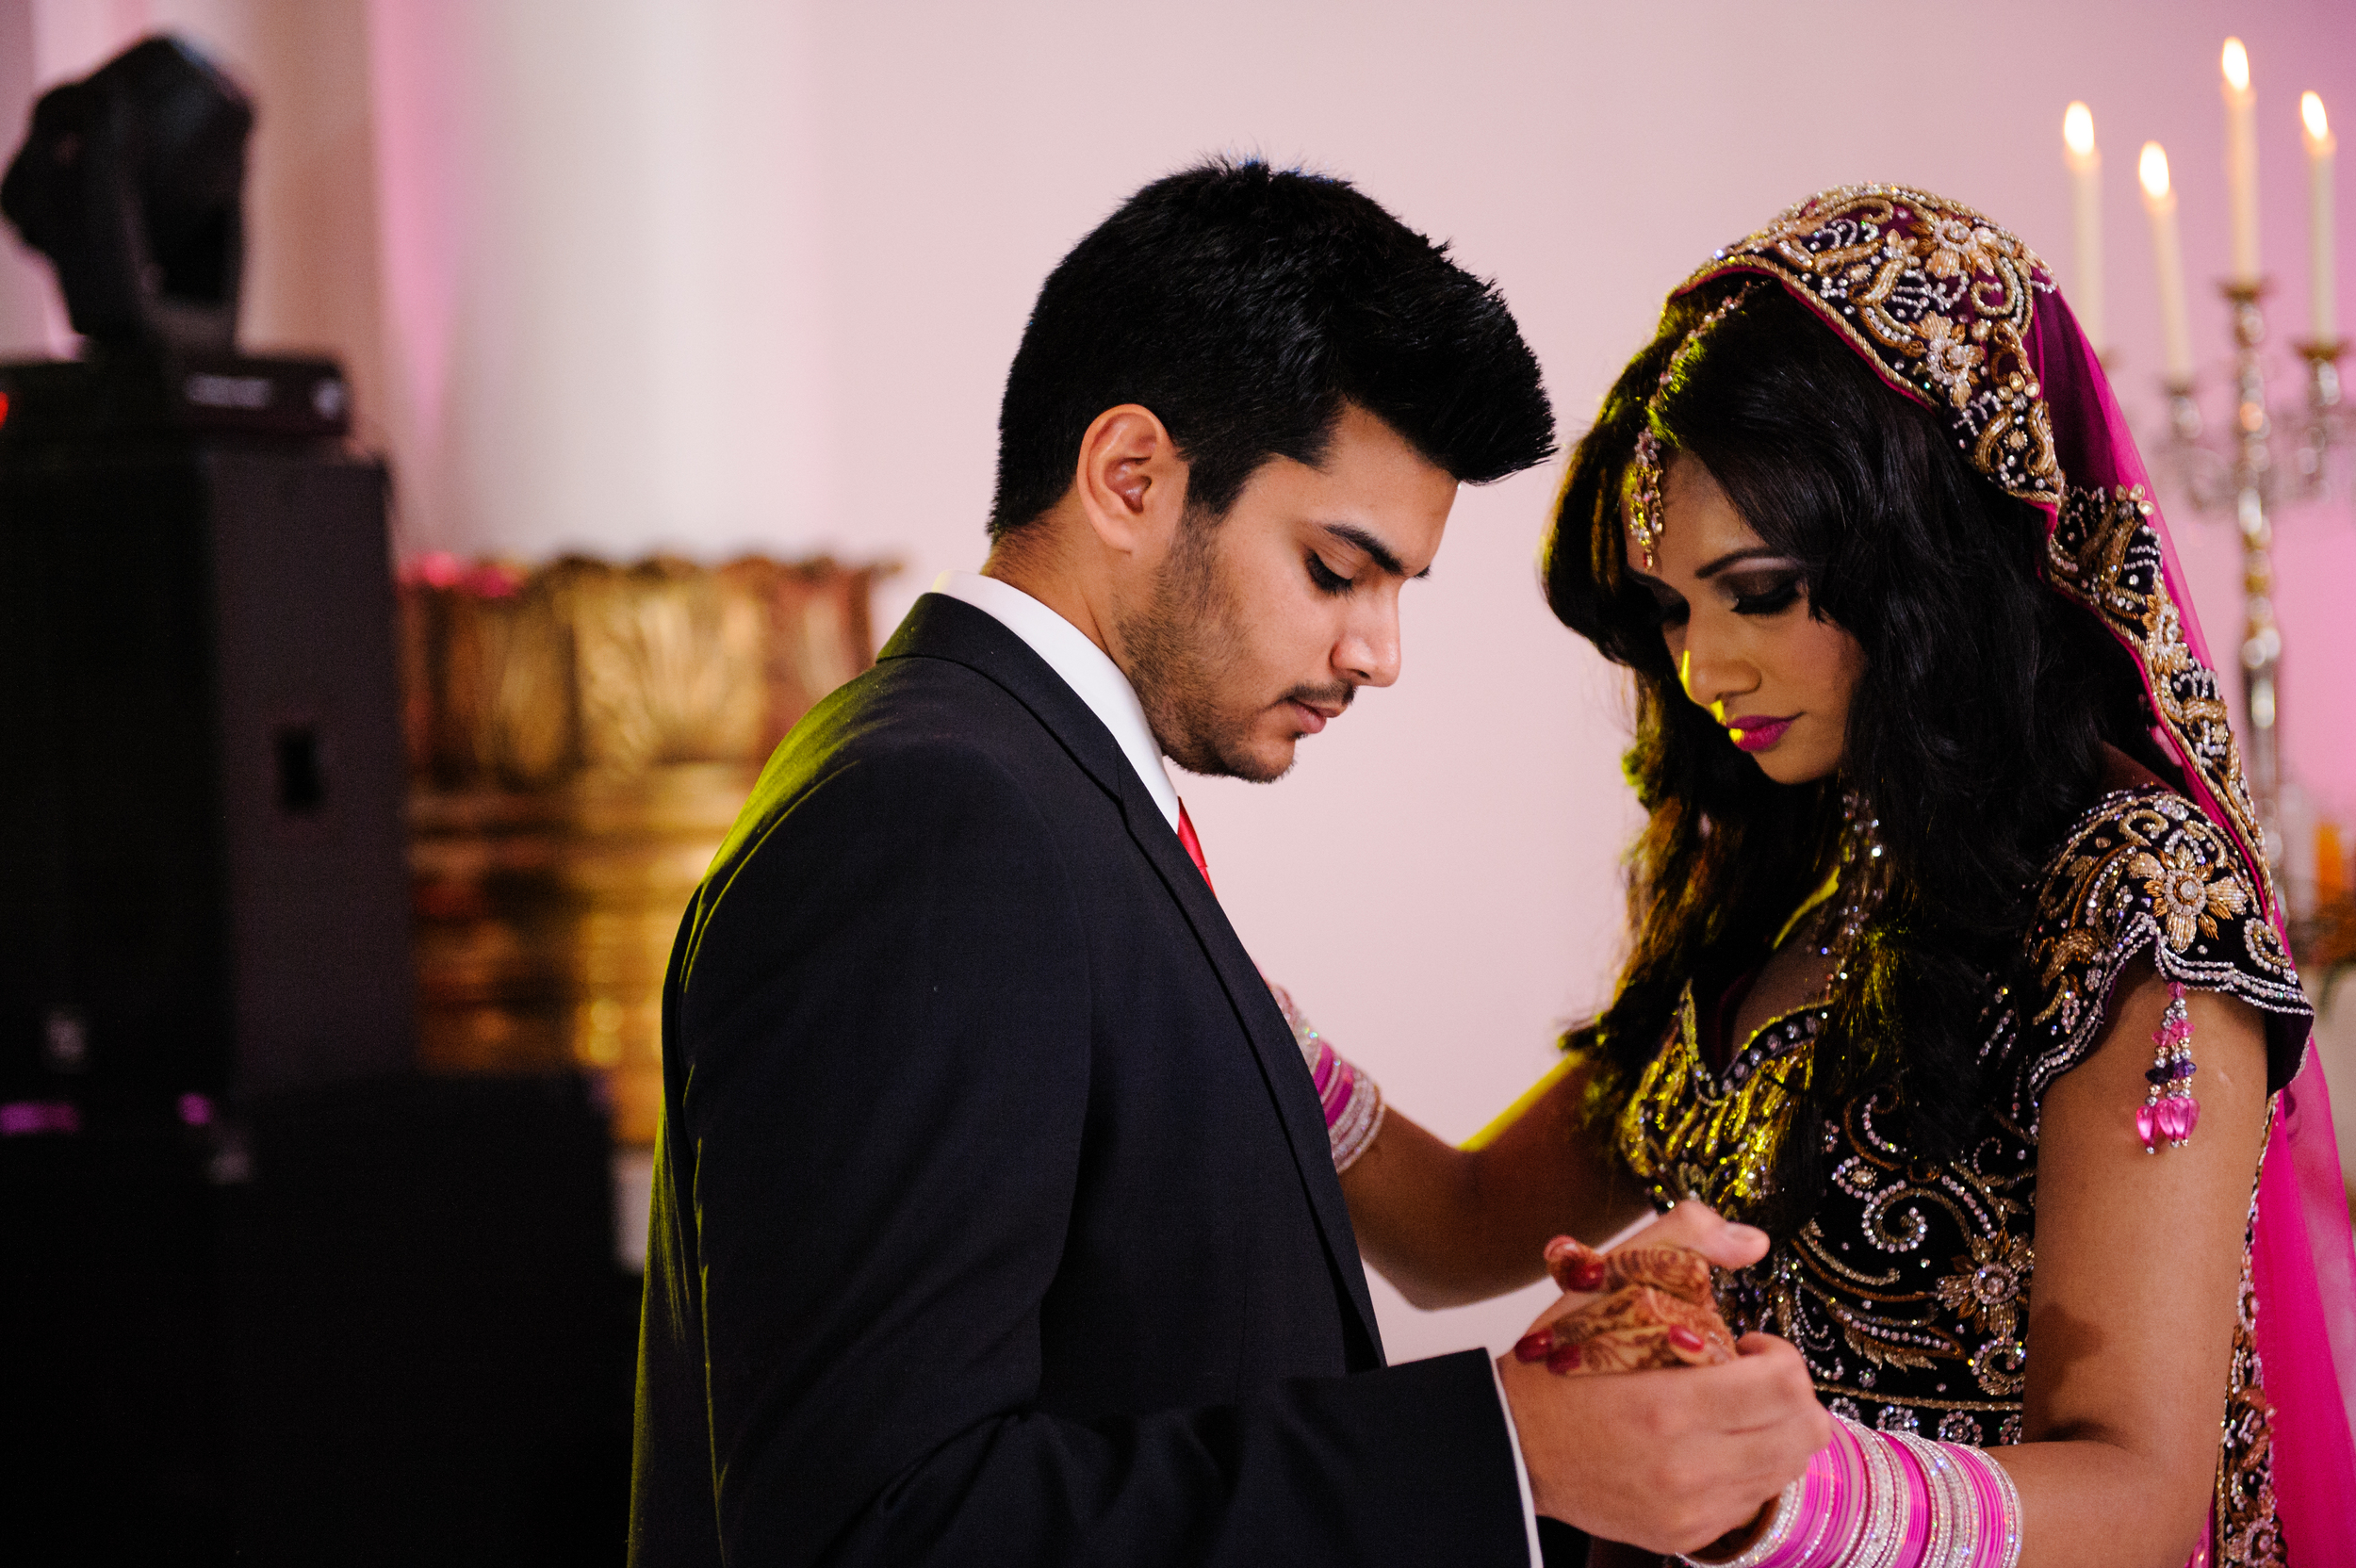 Kiran_and_Manjinder_Wedding-376.jpg